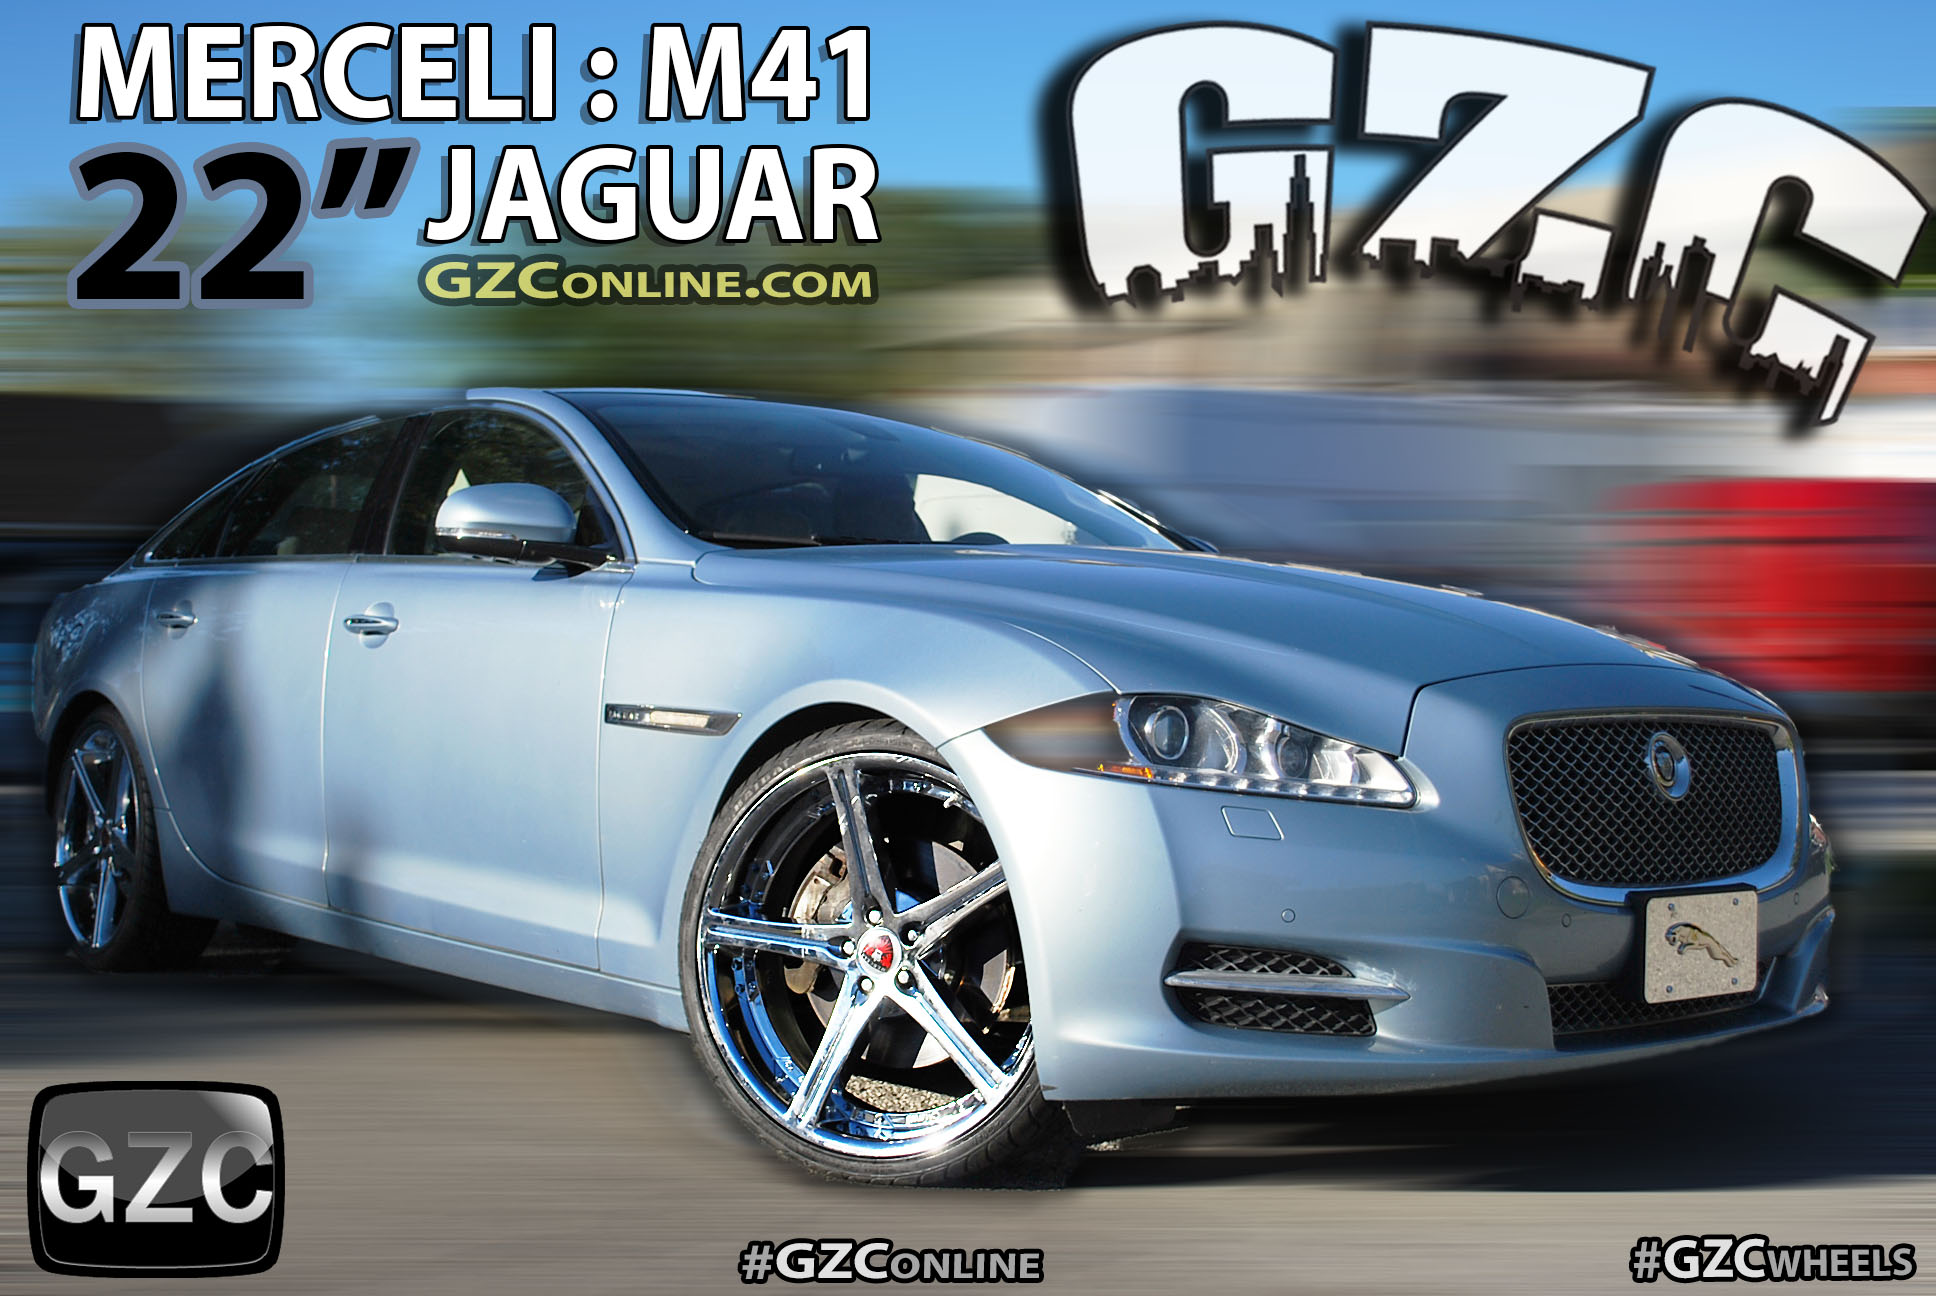 Merceli Wheels 22 Inch Style M41 All Chrome on Jaguar - GZConline